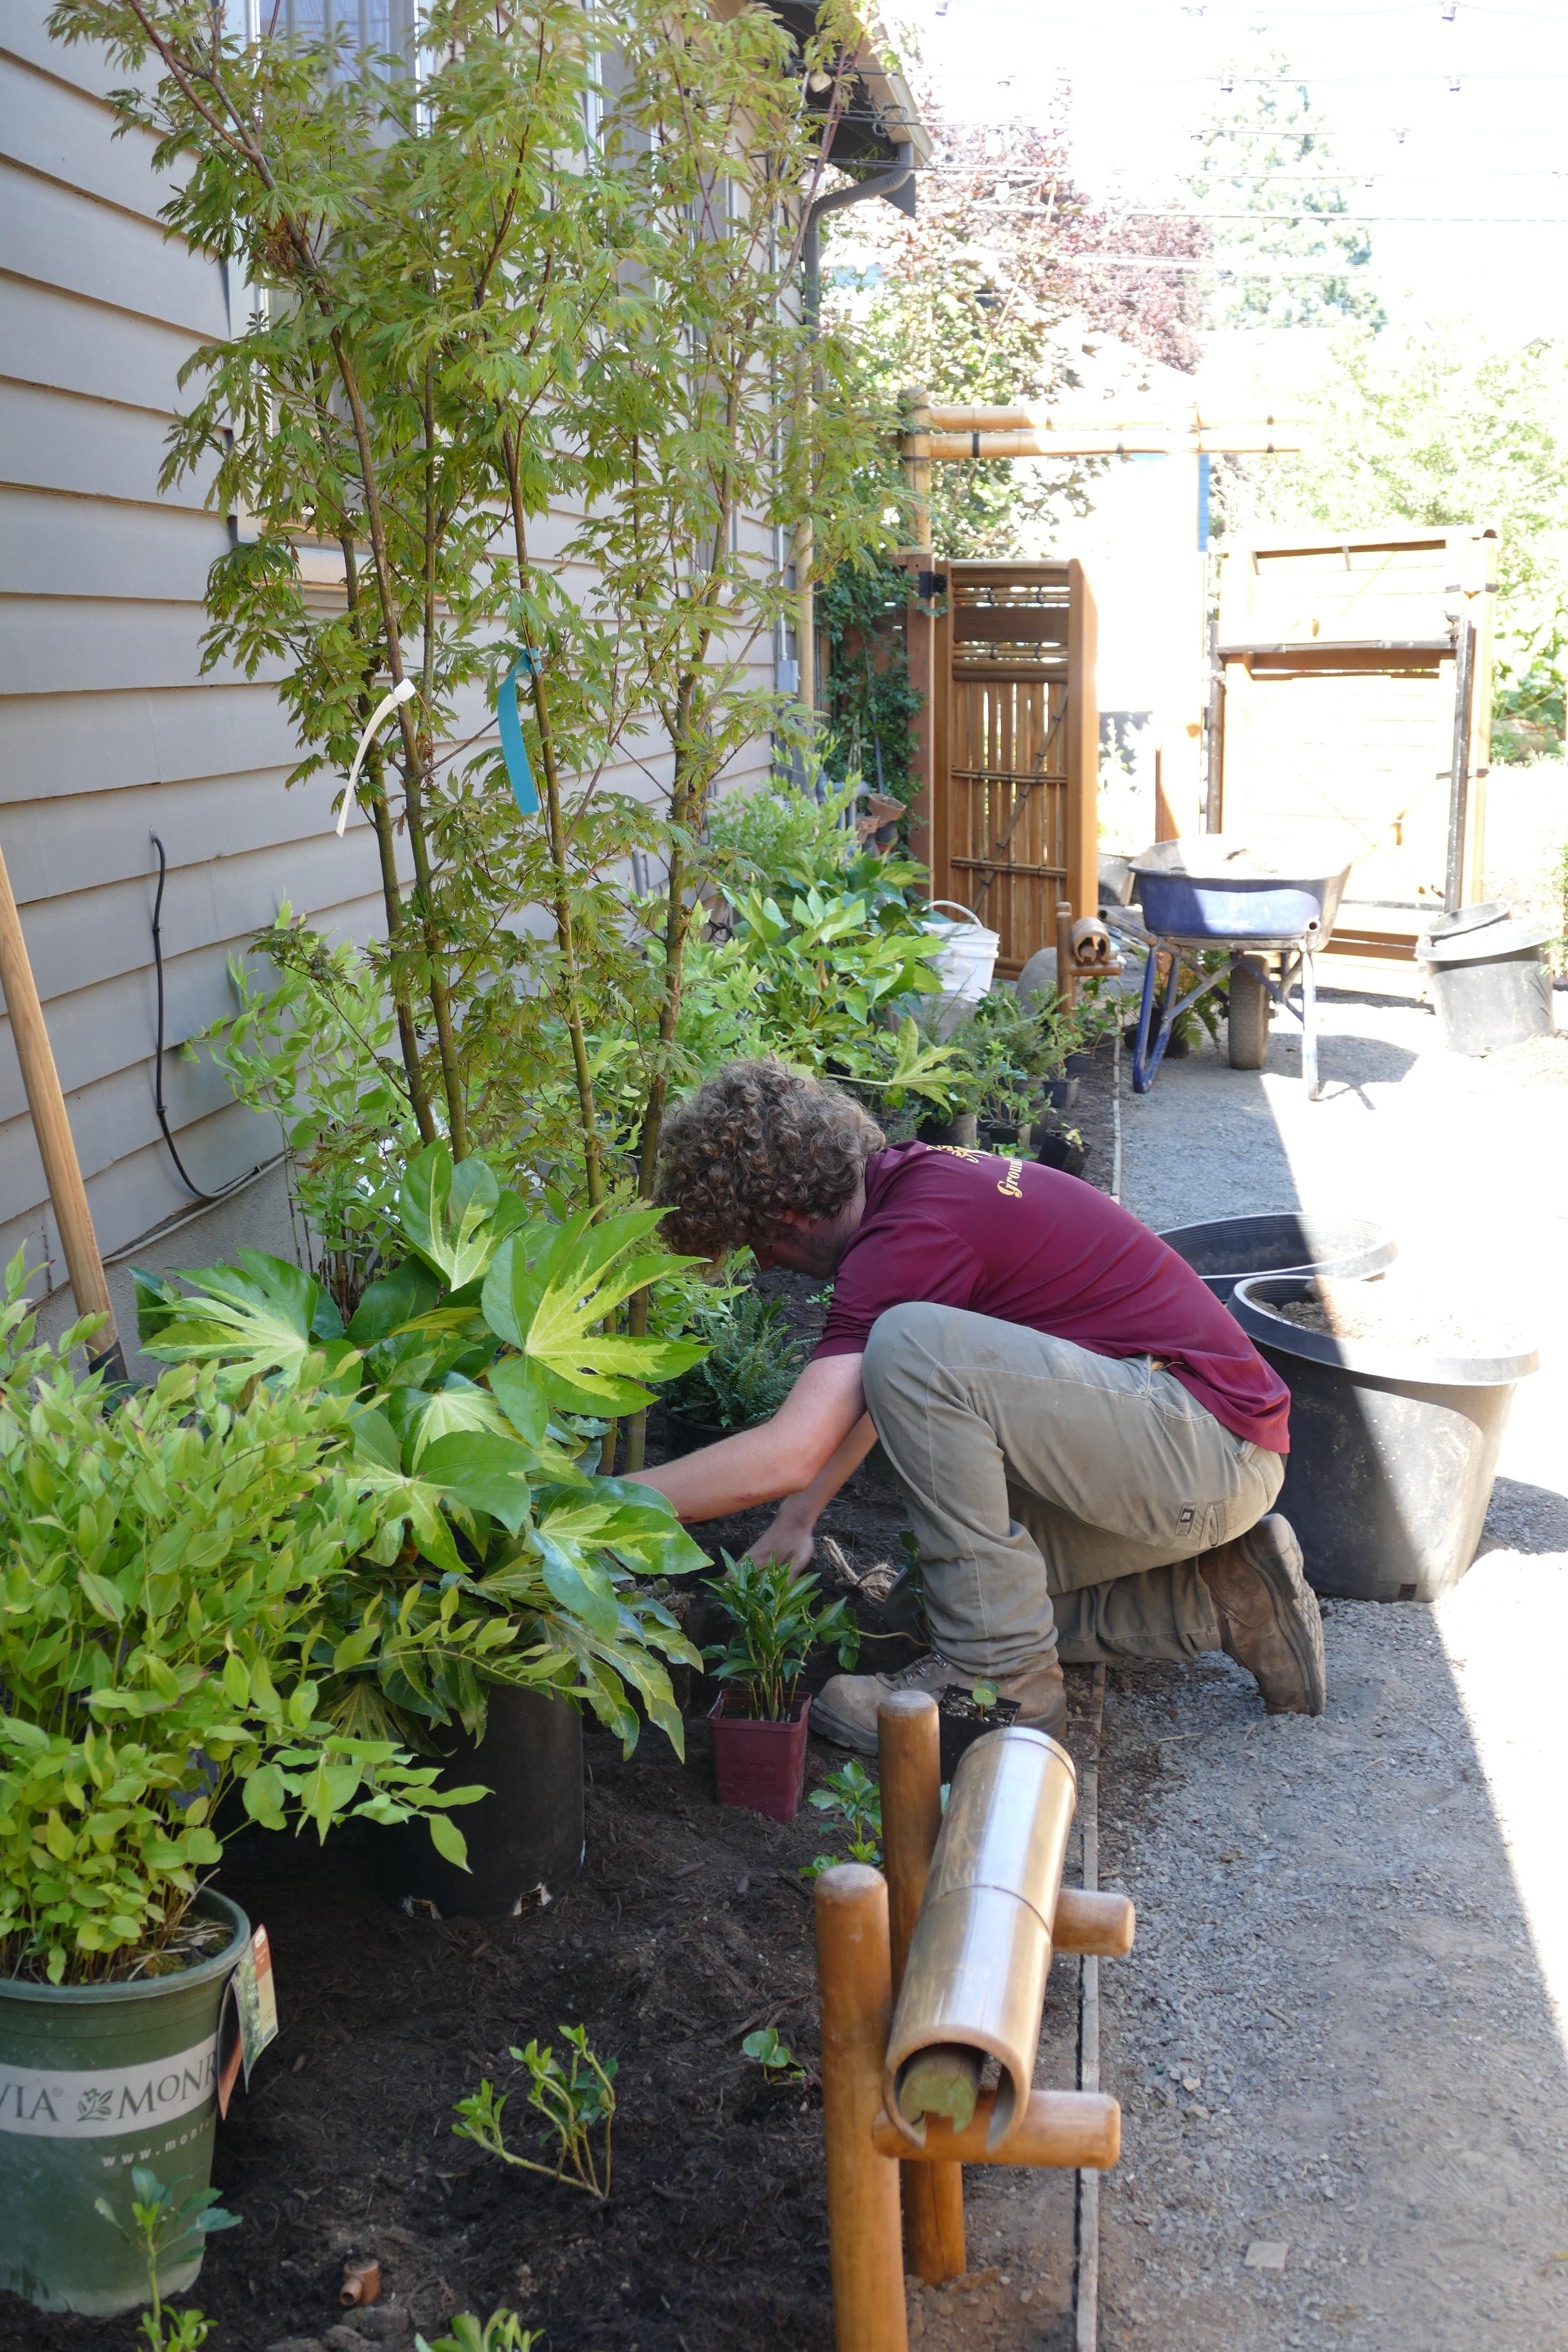 With the front walkway being heavily shaded on the South and in full sun on the North, plantings had to be chosen to thrive in these intense microclimates while also visually working together.